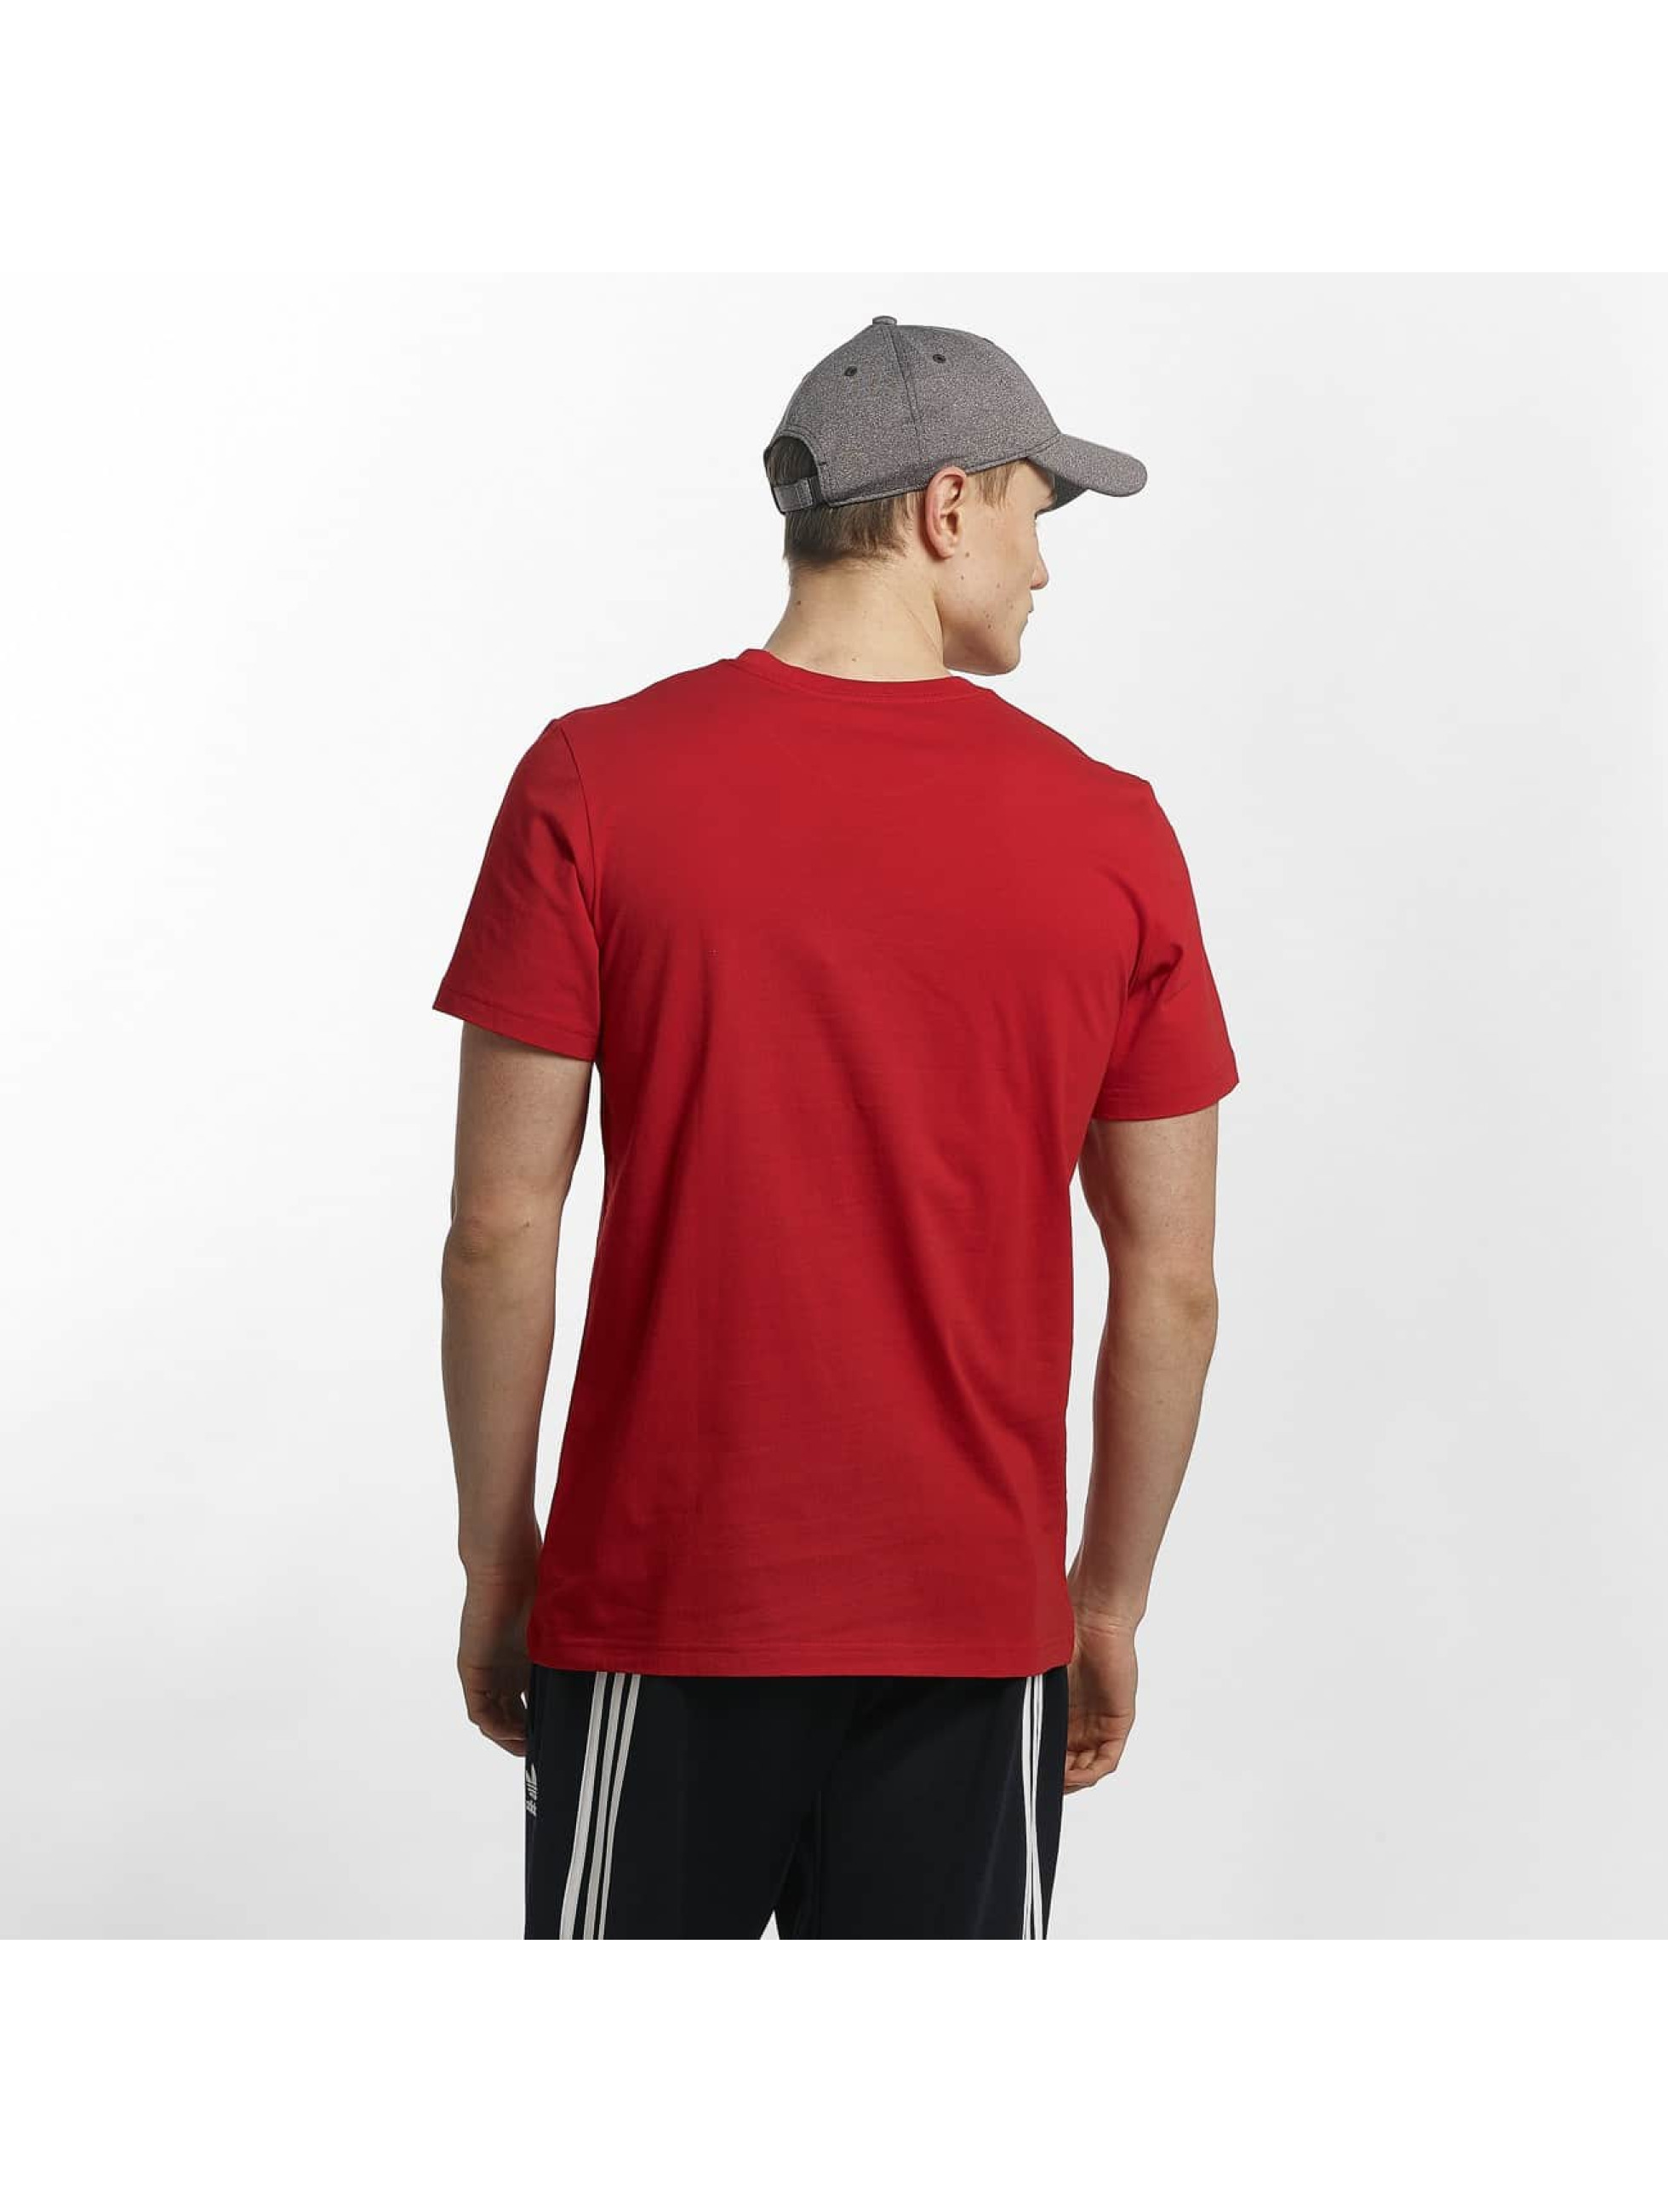 adidas t-shirt Traction Tongue rood